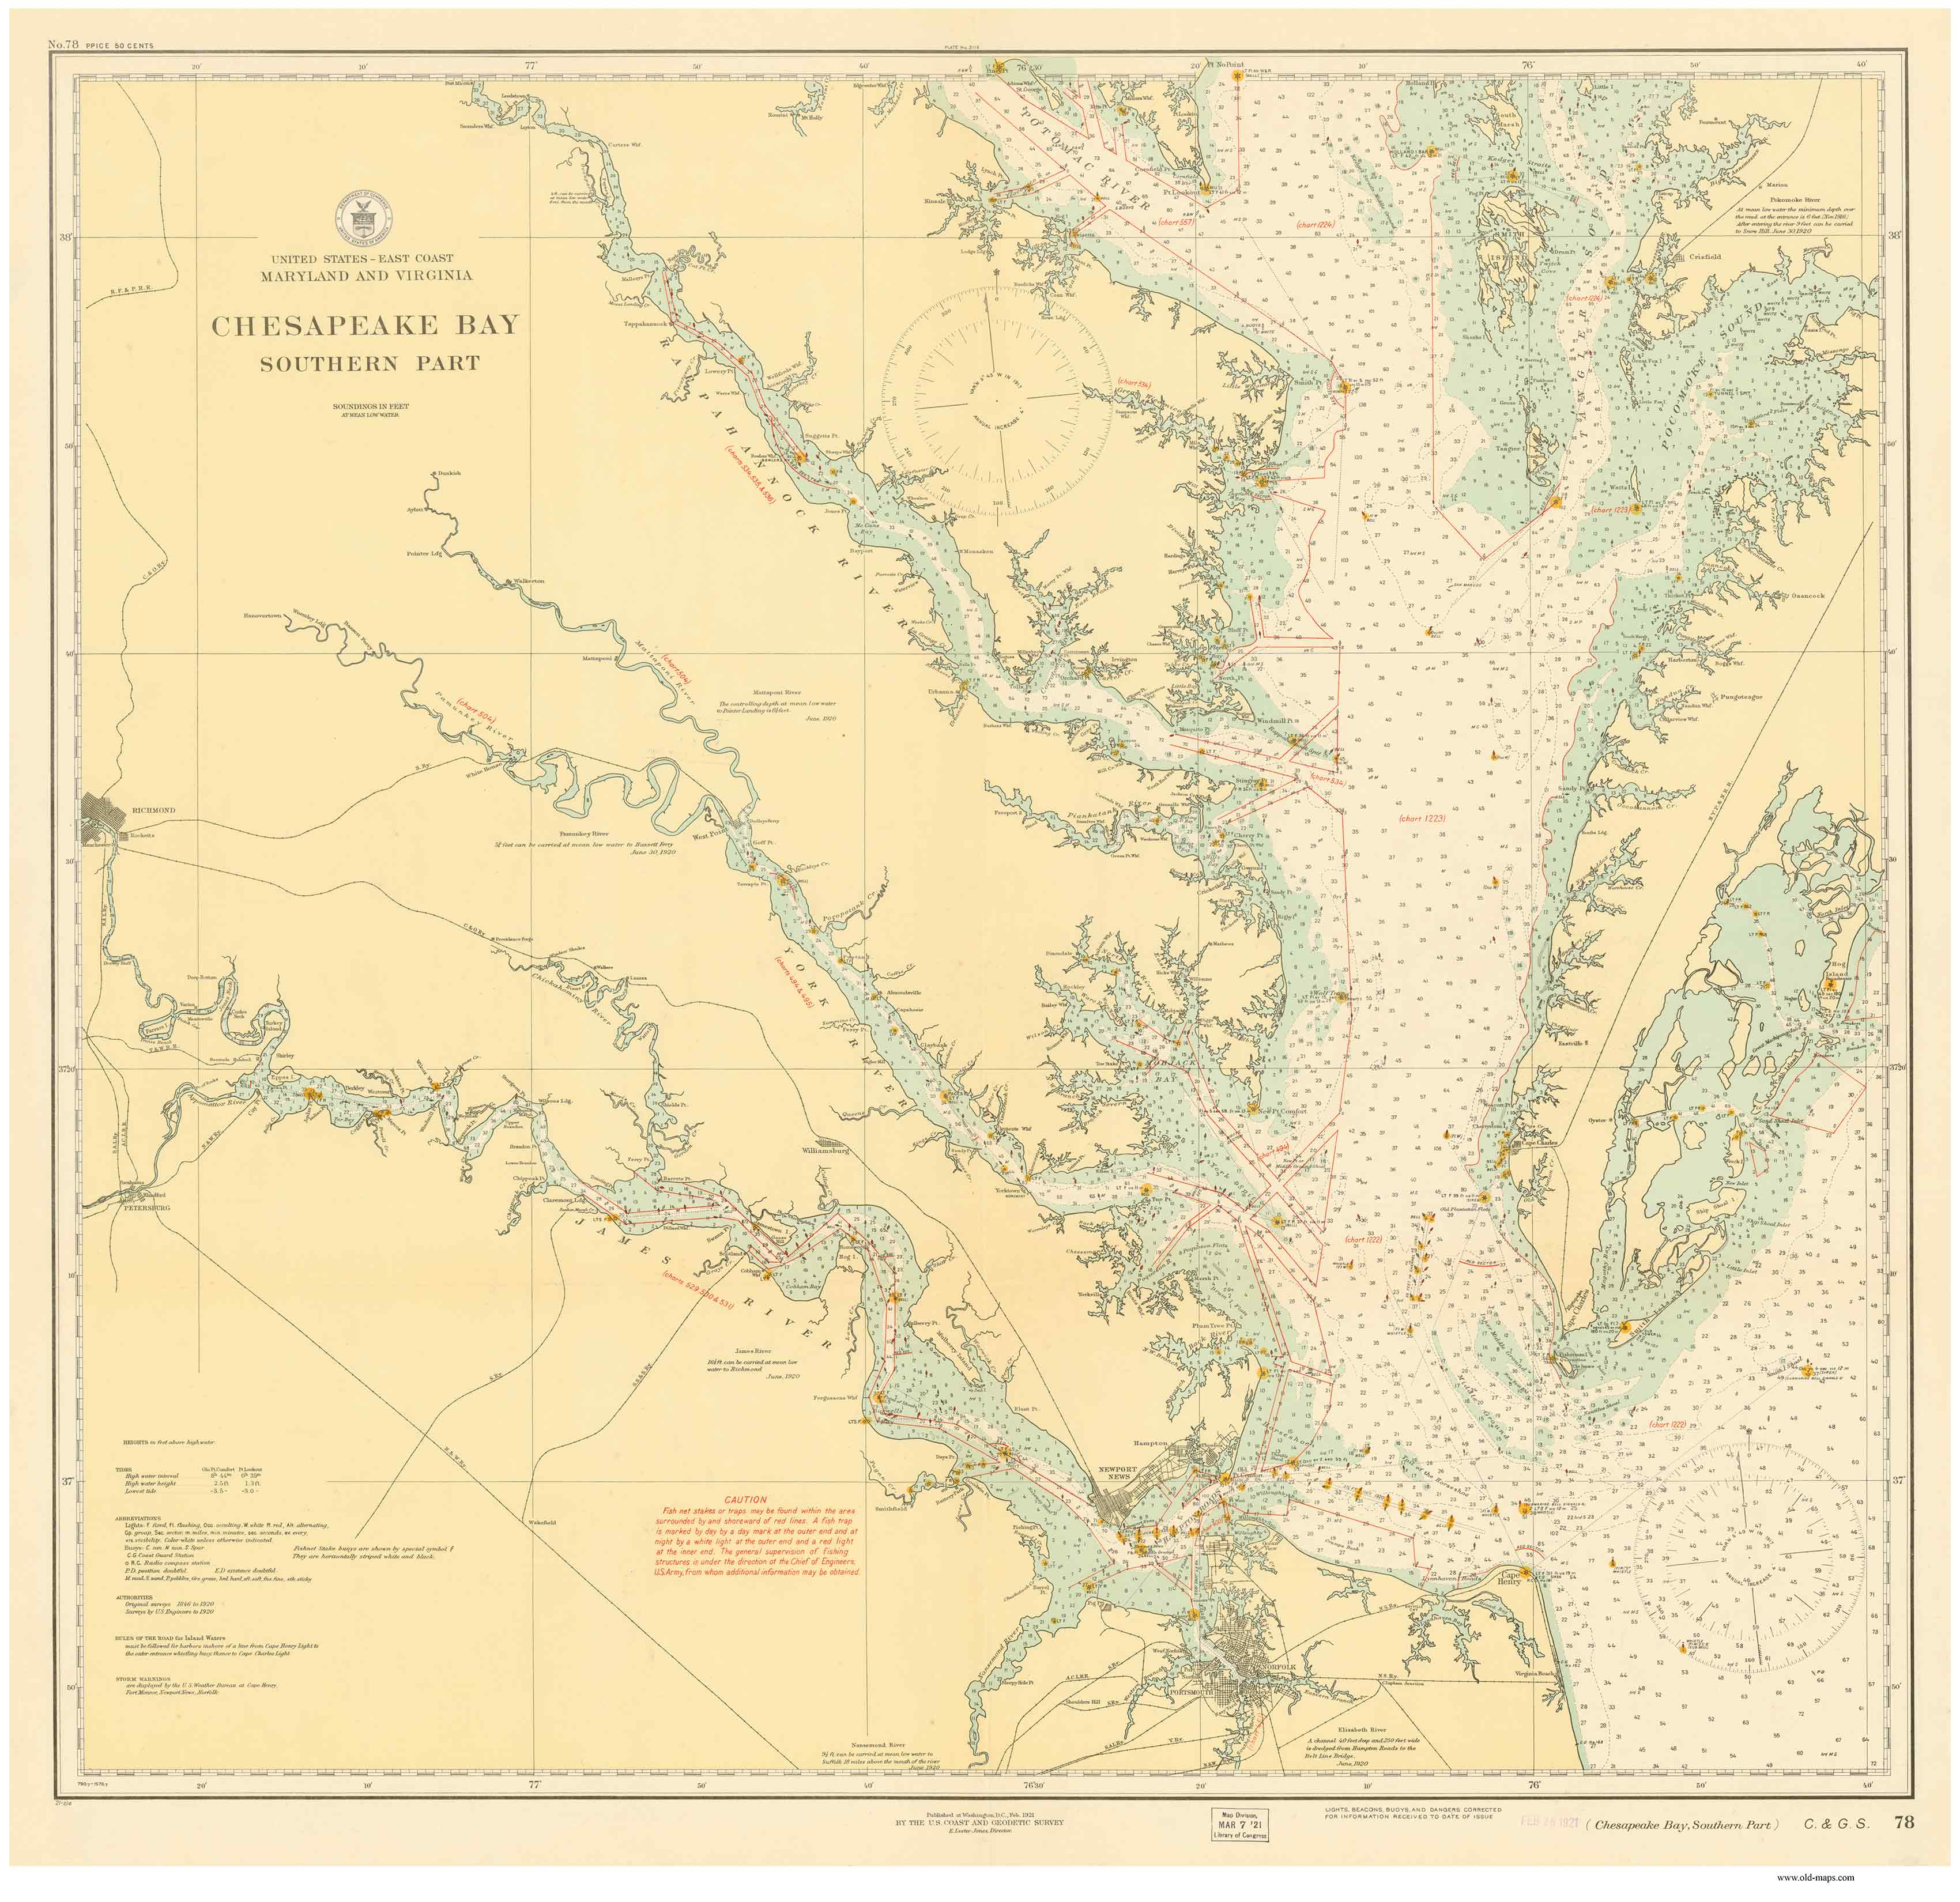 Historical Nautical Charts of the Southern Part of the Chesapeake Bay